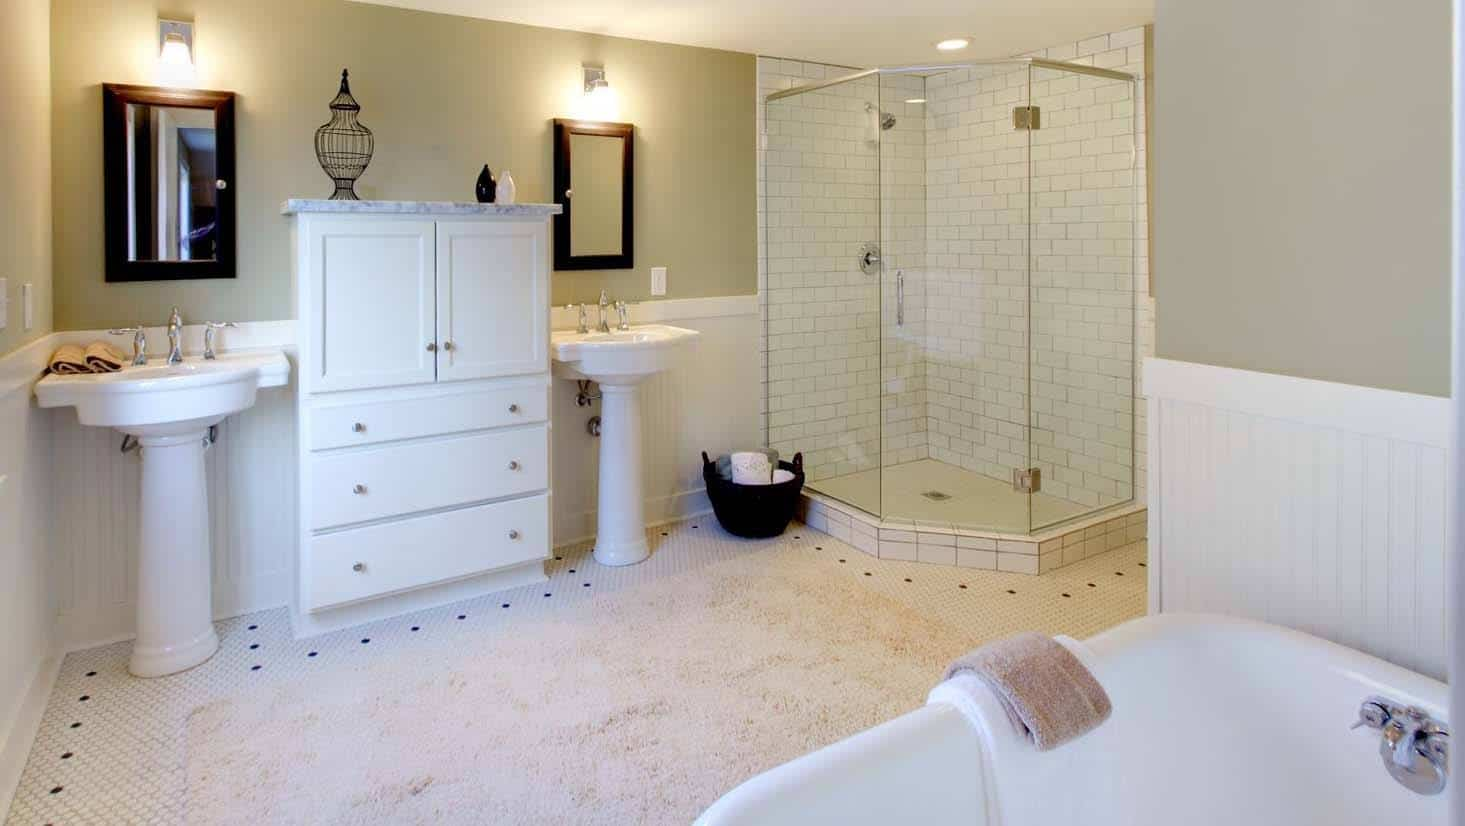 Bathroom Remodel Yuba City Ca bathroom remodeling in yuba city ca, chico ca & sacramento ca